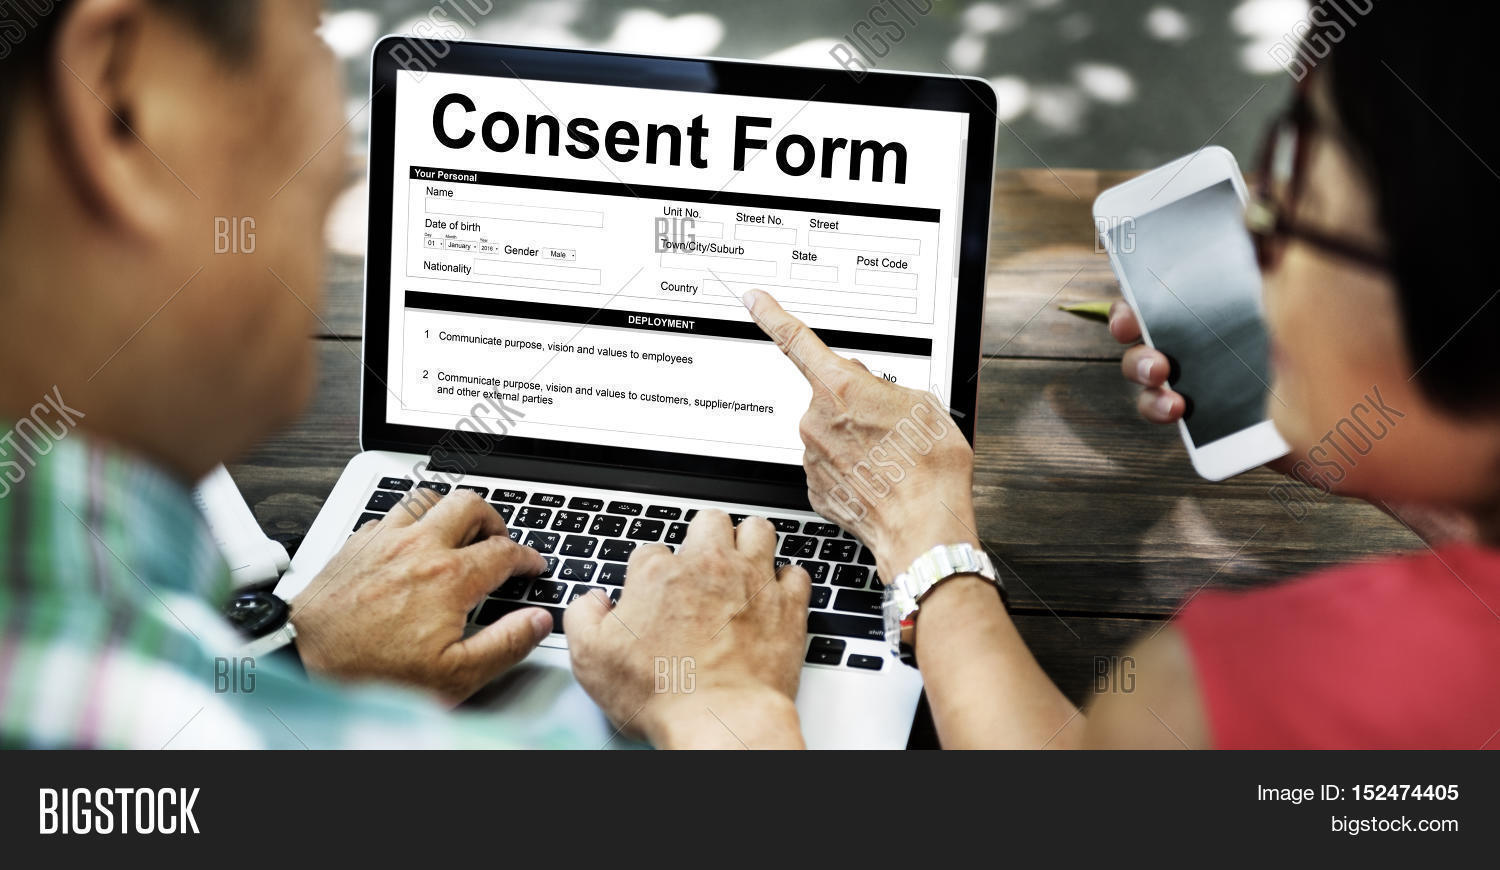 Consent Form Image & Photo (Free Trial) | Bigstock